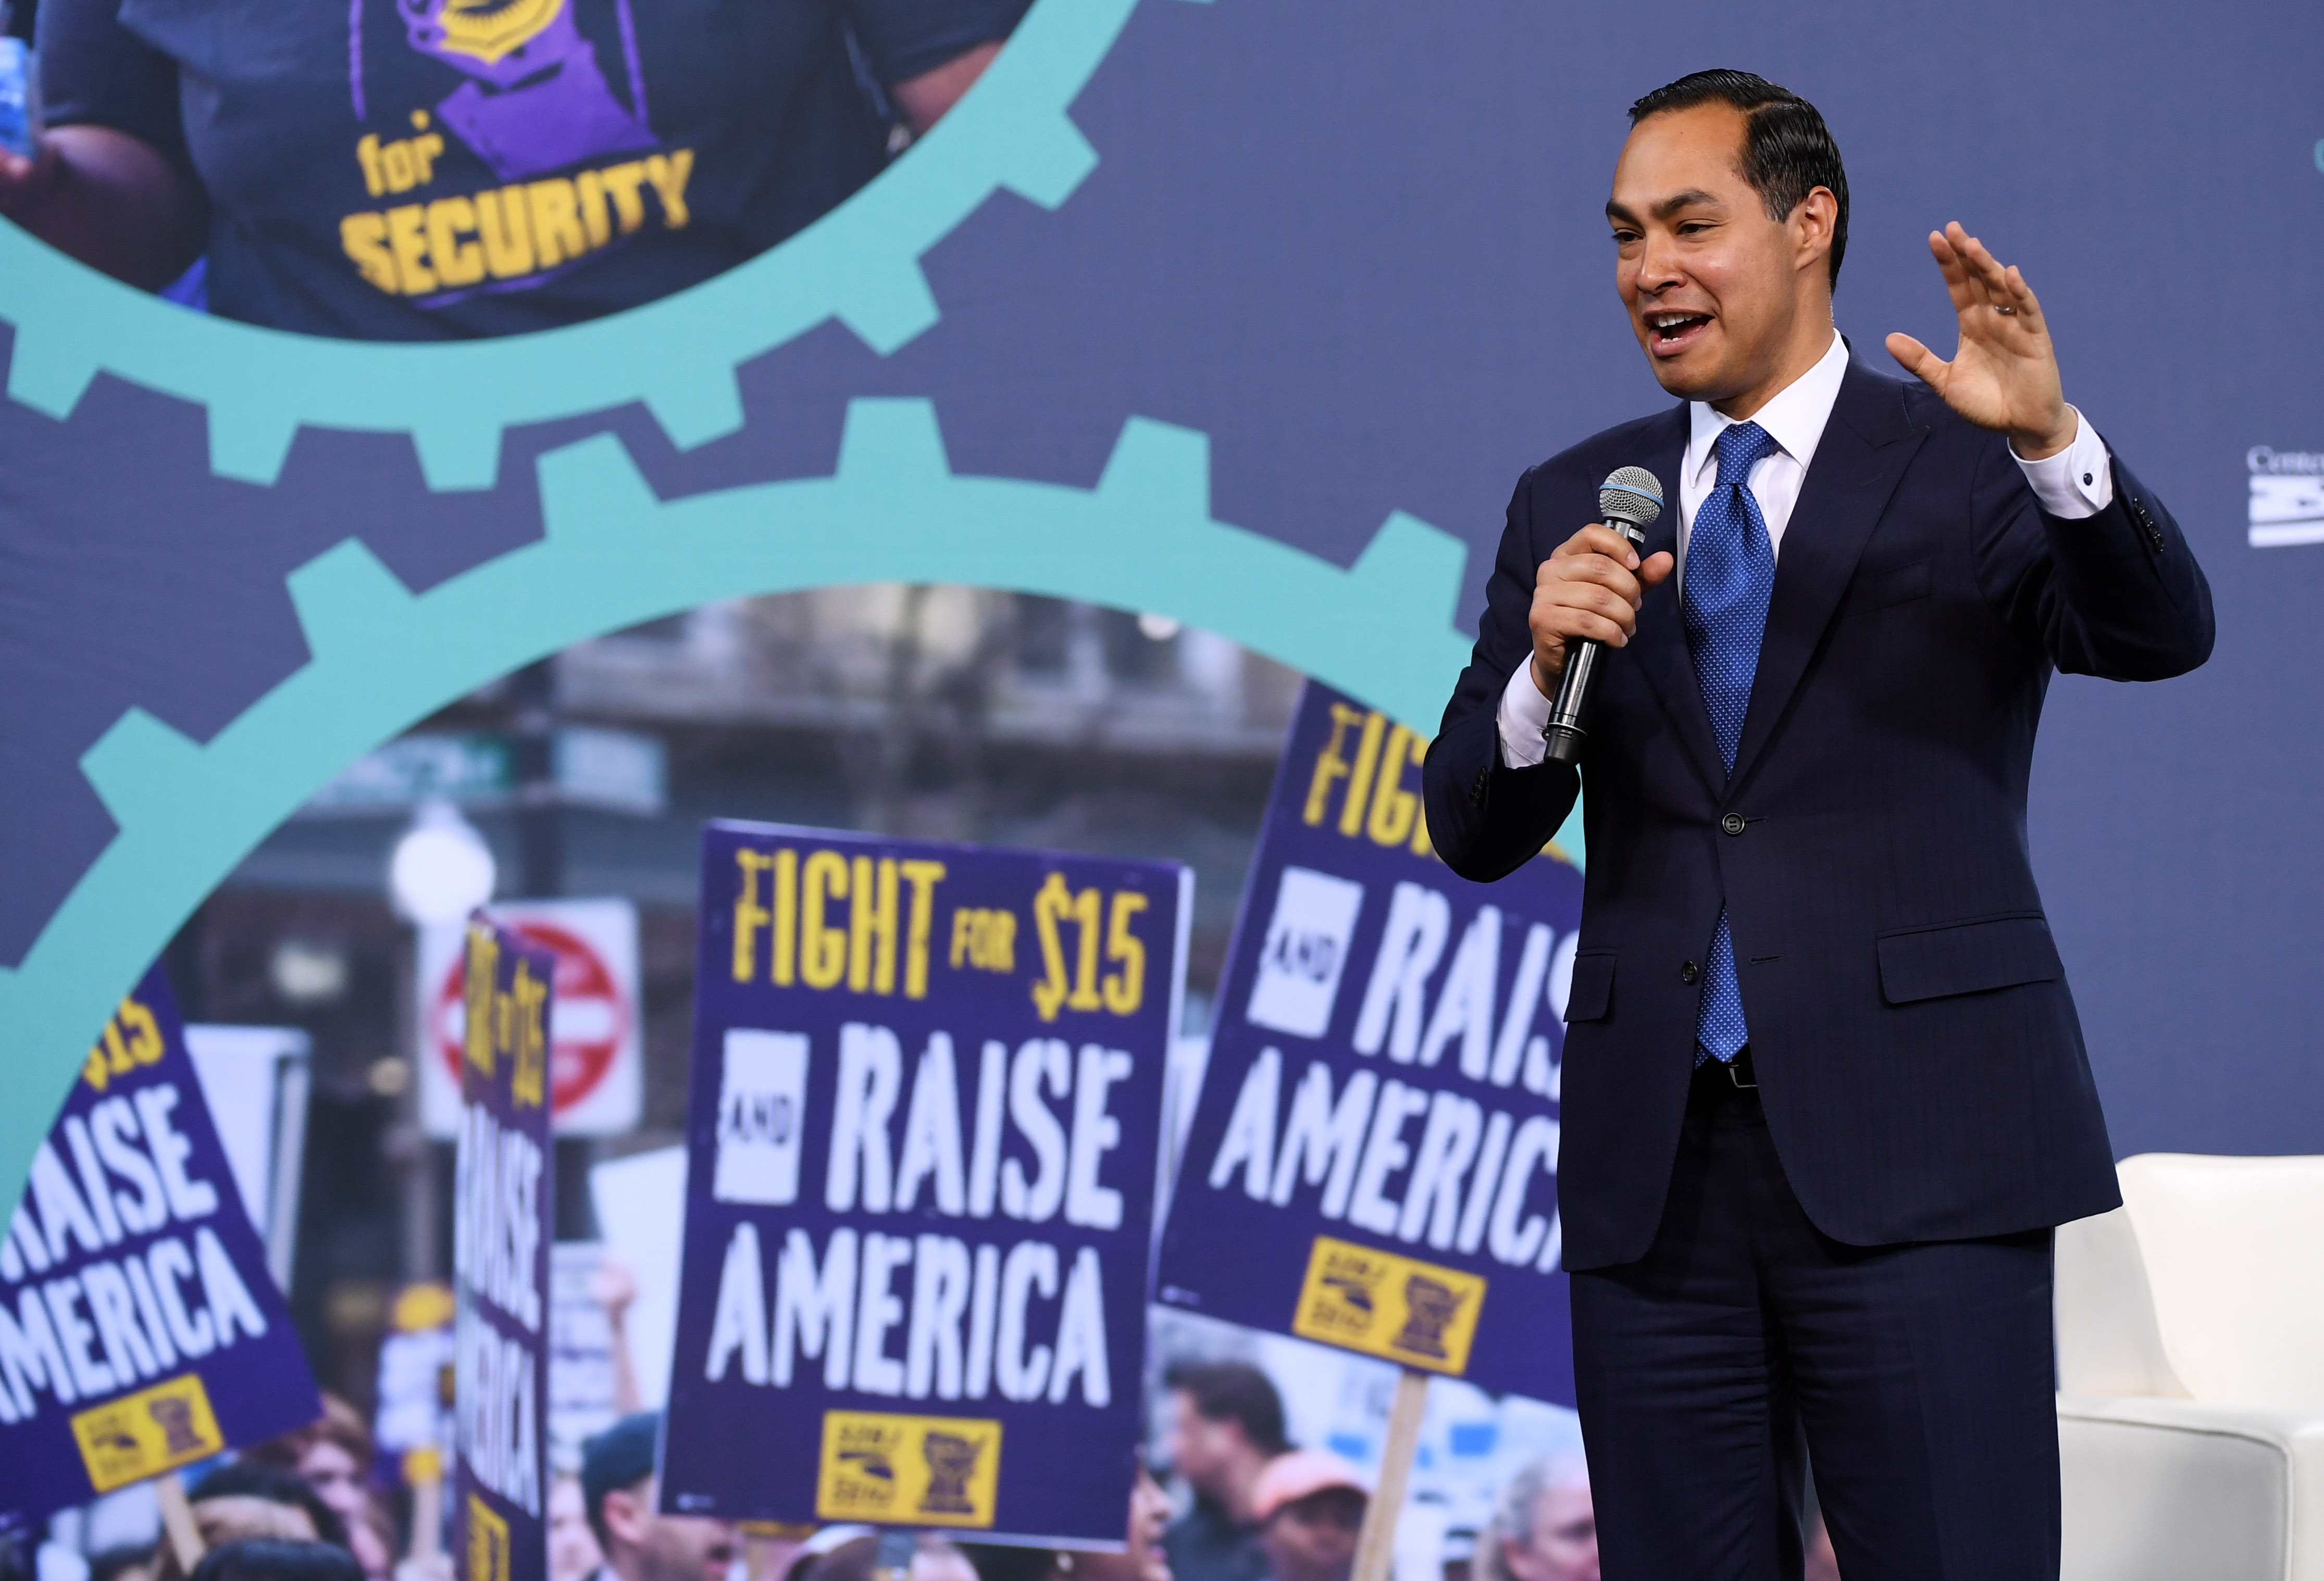 Where the 2020 candidates stand on raising the federal minimum wage